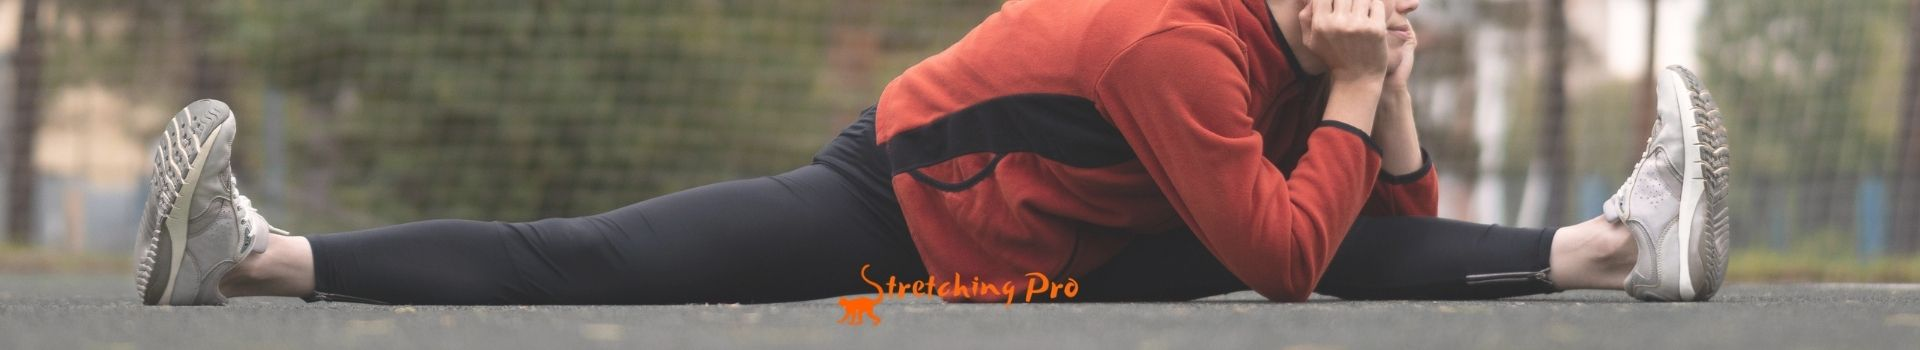 stretchingpro-ameliorer-ouverture-hanche